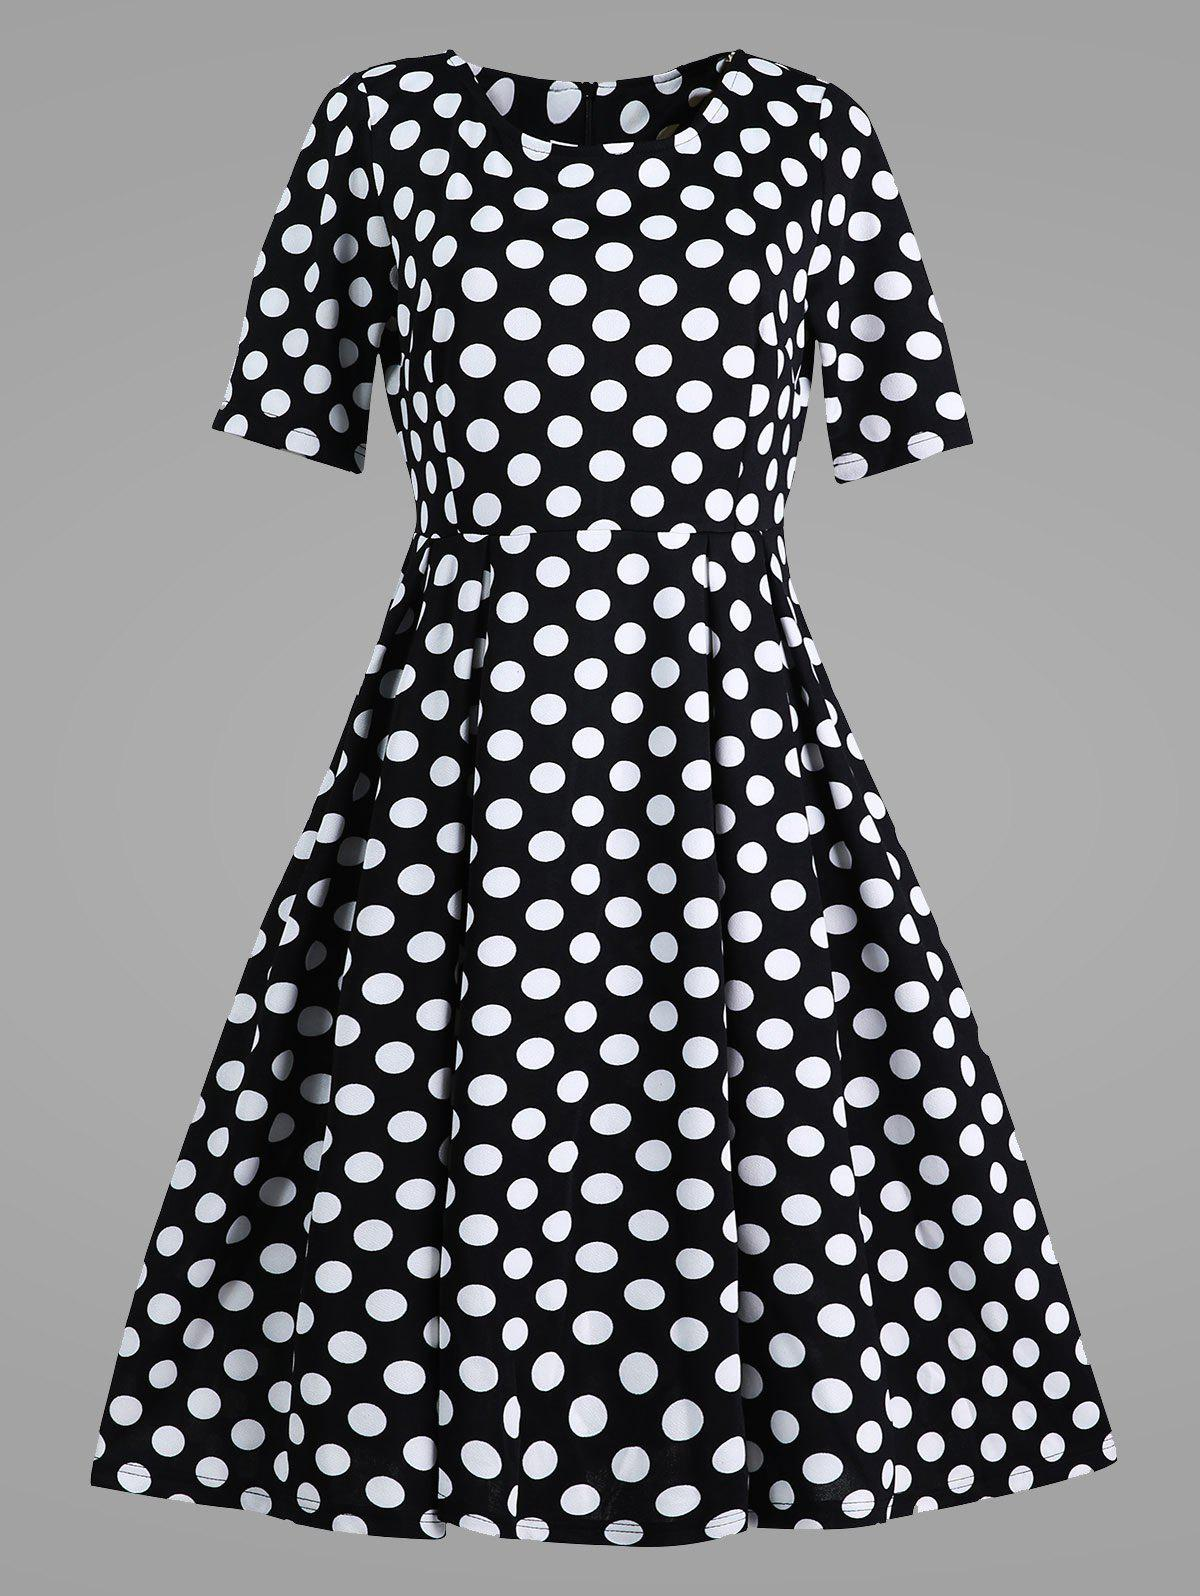 Polka Dot Plus Size Vintage Dress with PocketsWOMEN<br><br>Size: 5XL; Color: BLACK; Style: Vintage; Material: Cotton Blend,Polyester; Silhouette: Ball Gown; Dresses Length: Mid-Calf; Neckline: Round Collar; Sleeve Length: Short Sleeves; Waist: High Waisted; Embellishment: Pockets; Pattern Type: Polka Dot,Print; With Belt: No; Season: Spring,Summer; Weight: 0.3500kg; Package Contents: 1 x Dress;